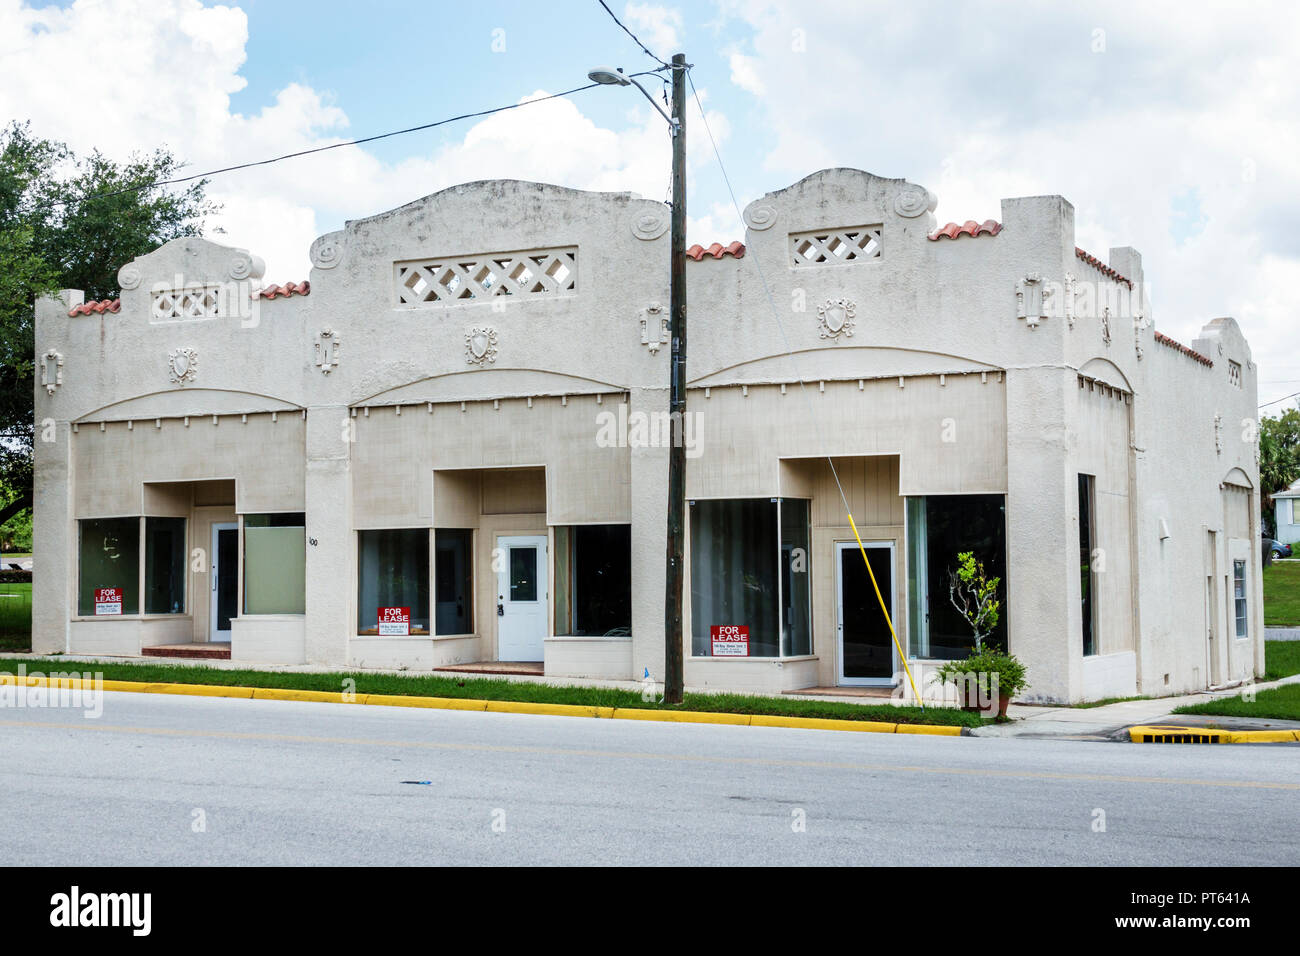 Davenport Florida commercial real estate for lease empty vacant building - Stock Image